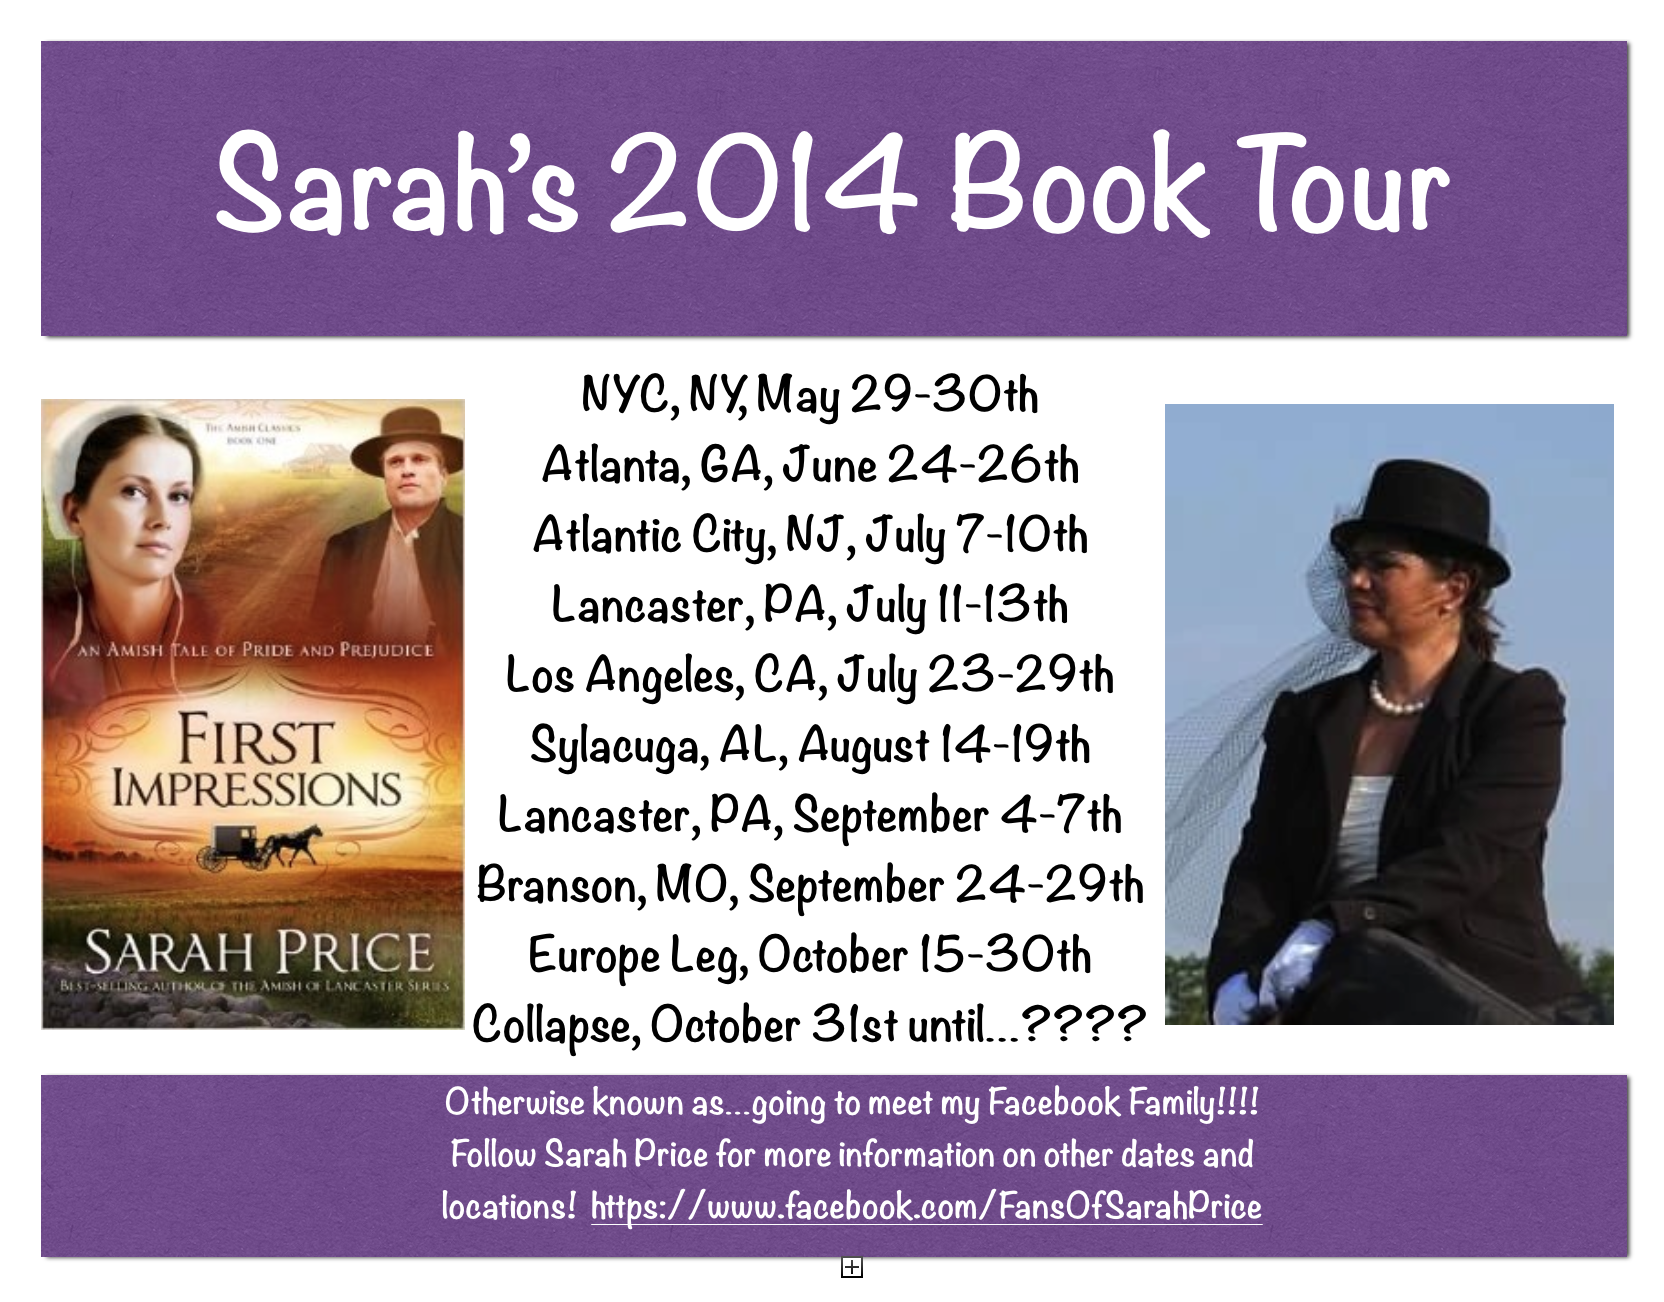 My Book Tour Dates for 2014